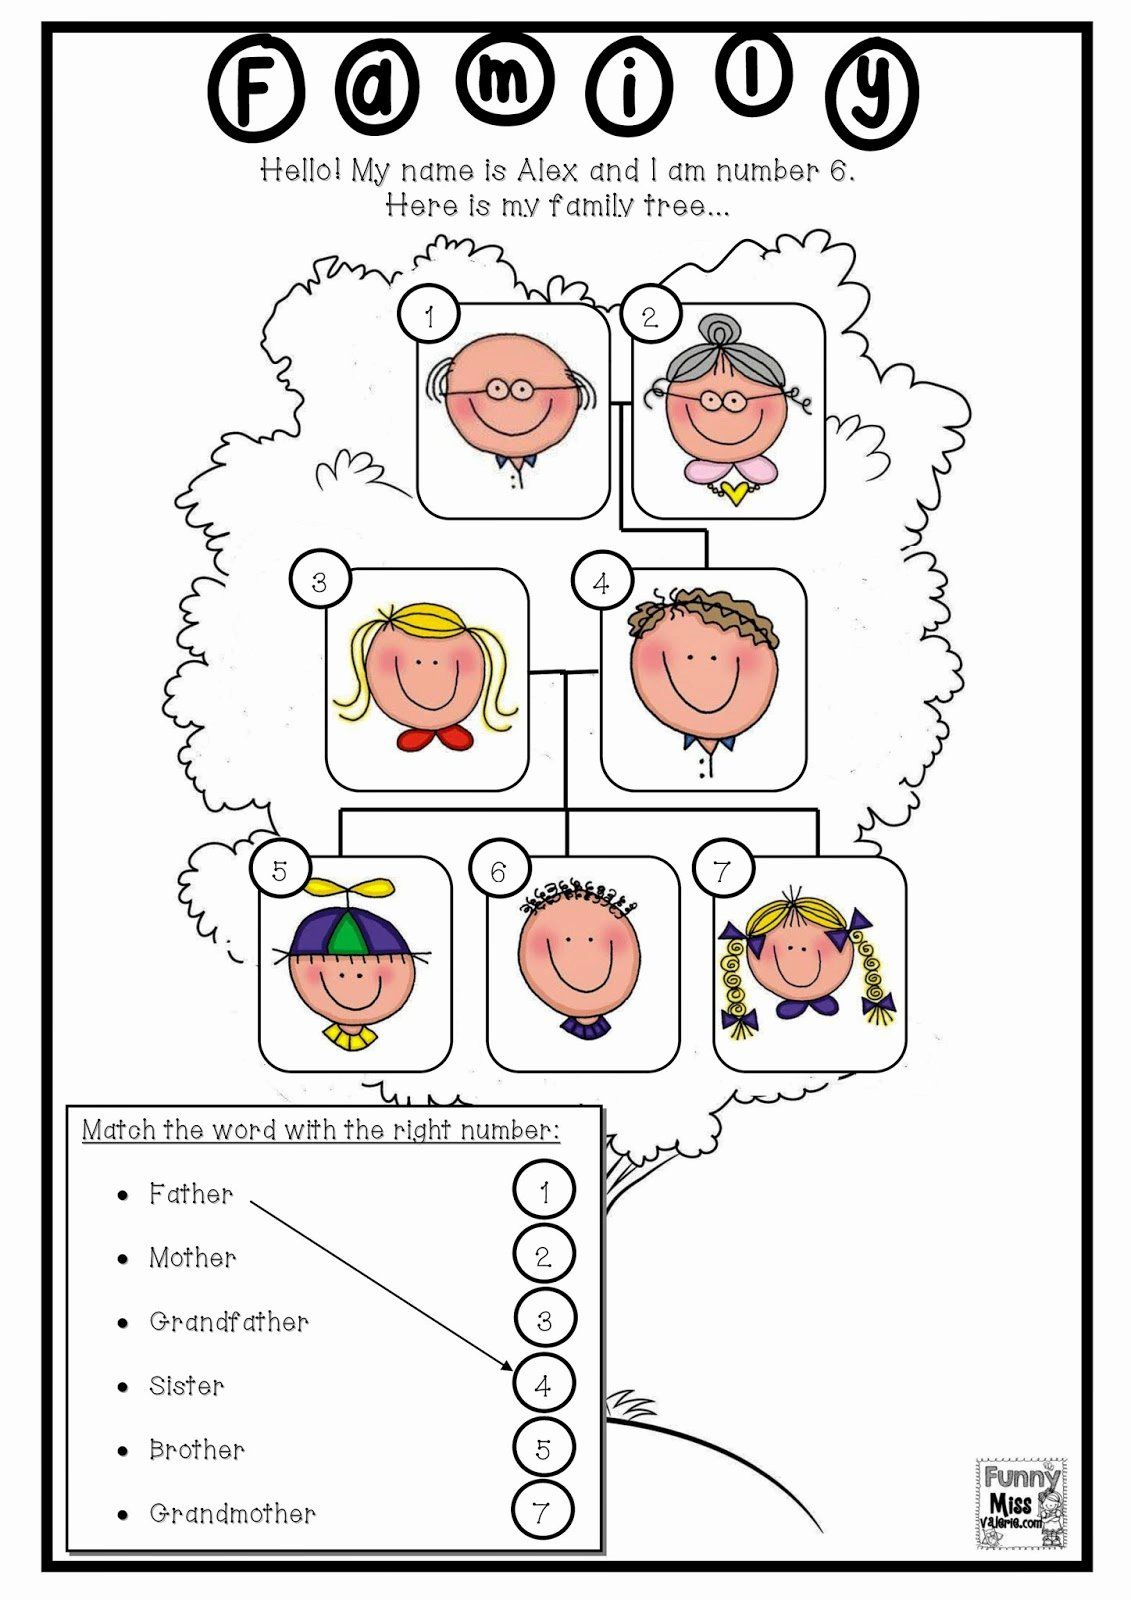 40 Family Tree Worksheet Printable Con Immagini